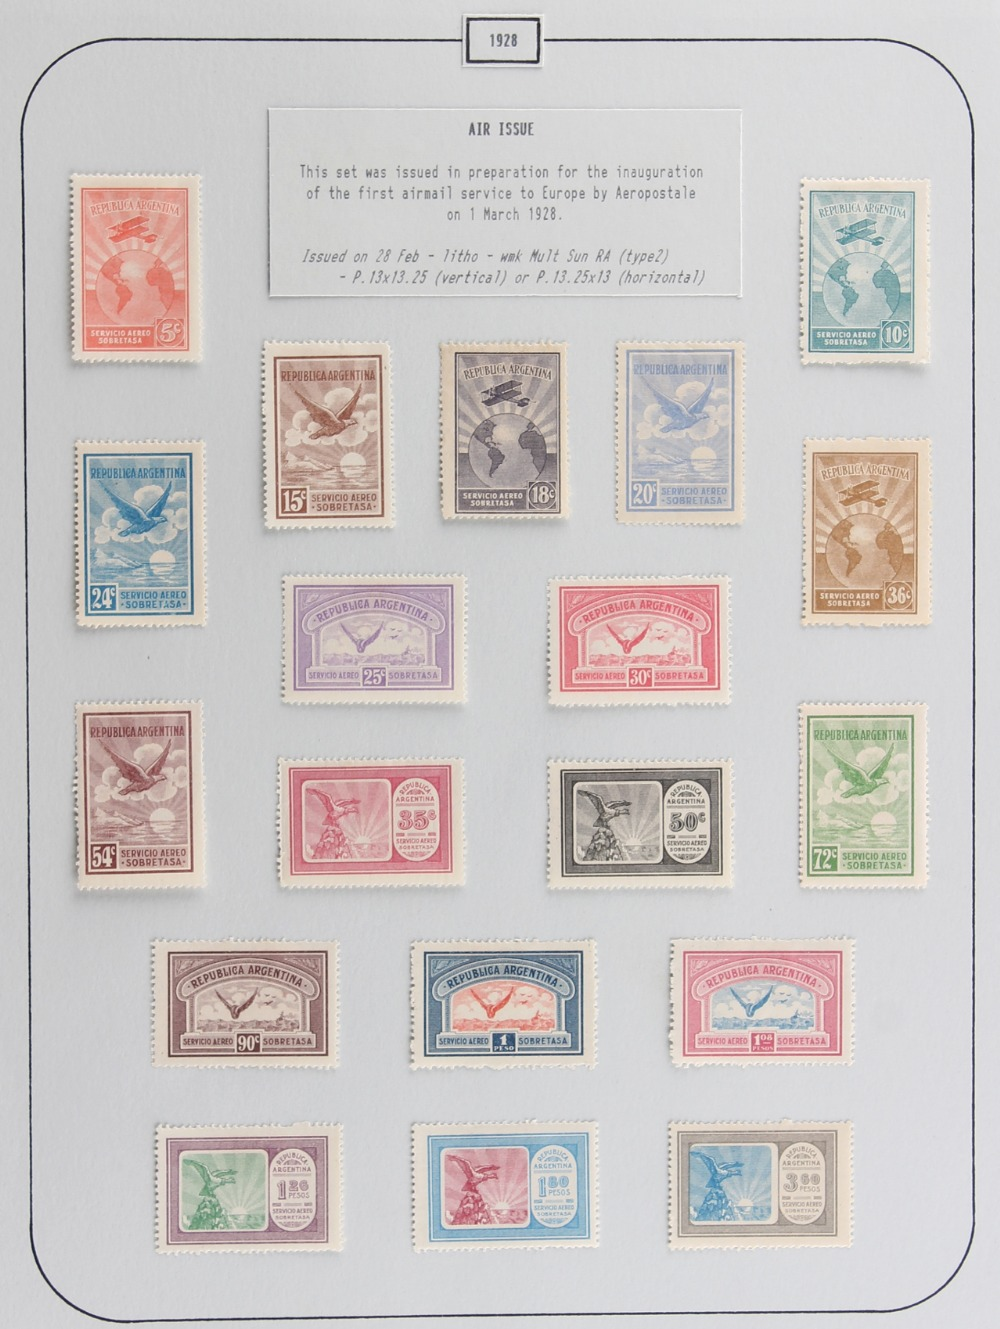 The Basil Lewis (1927-2019) collection of stamps - Argentina: 1928 Air 5c to 3p60 set with